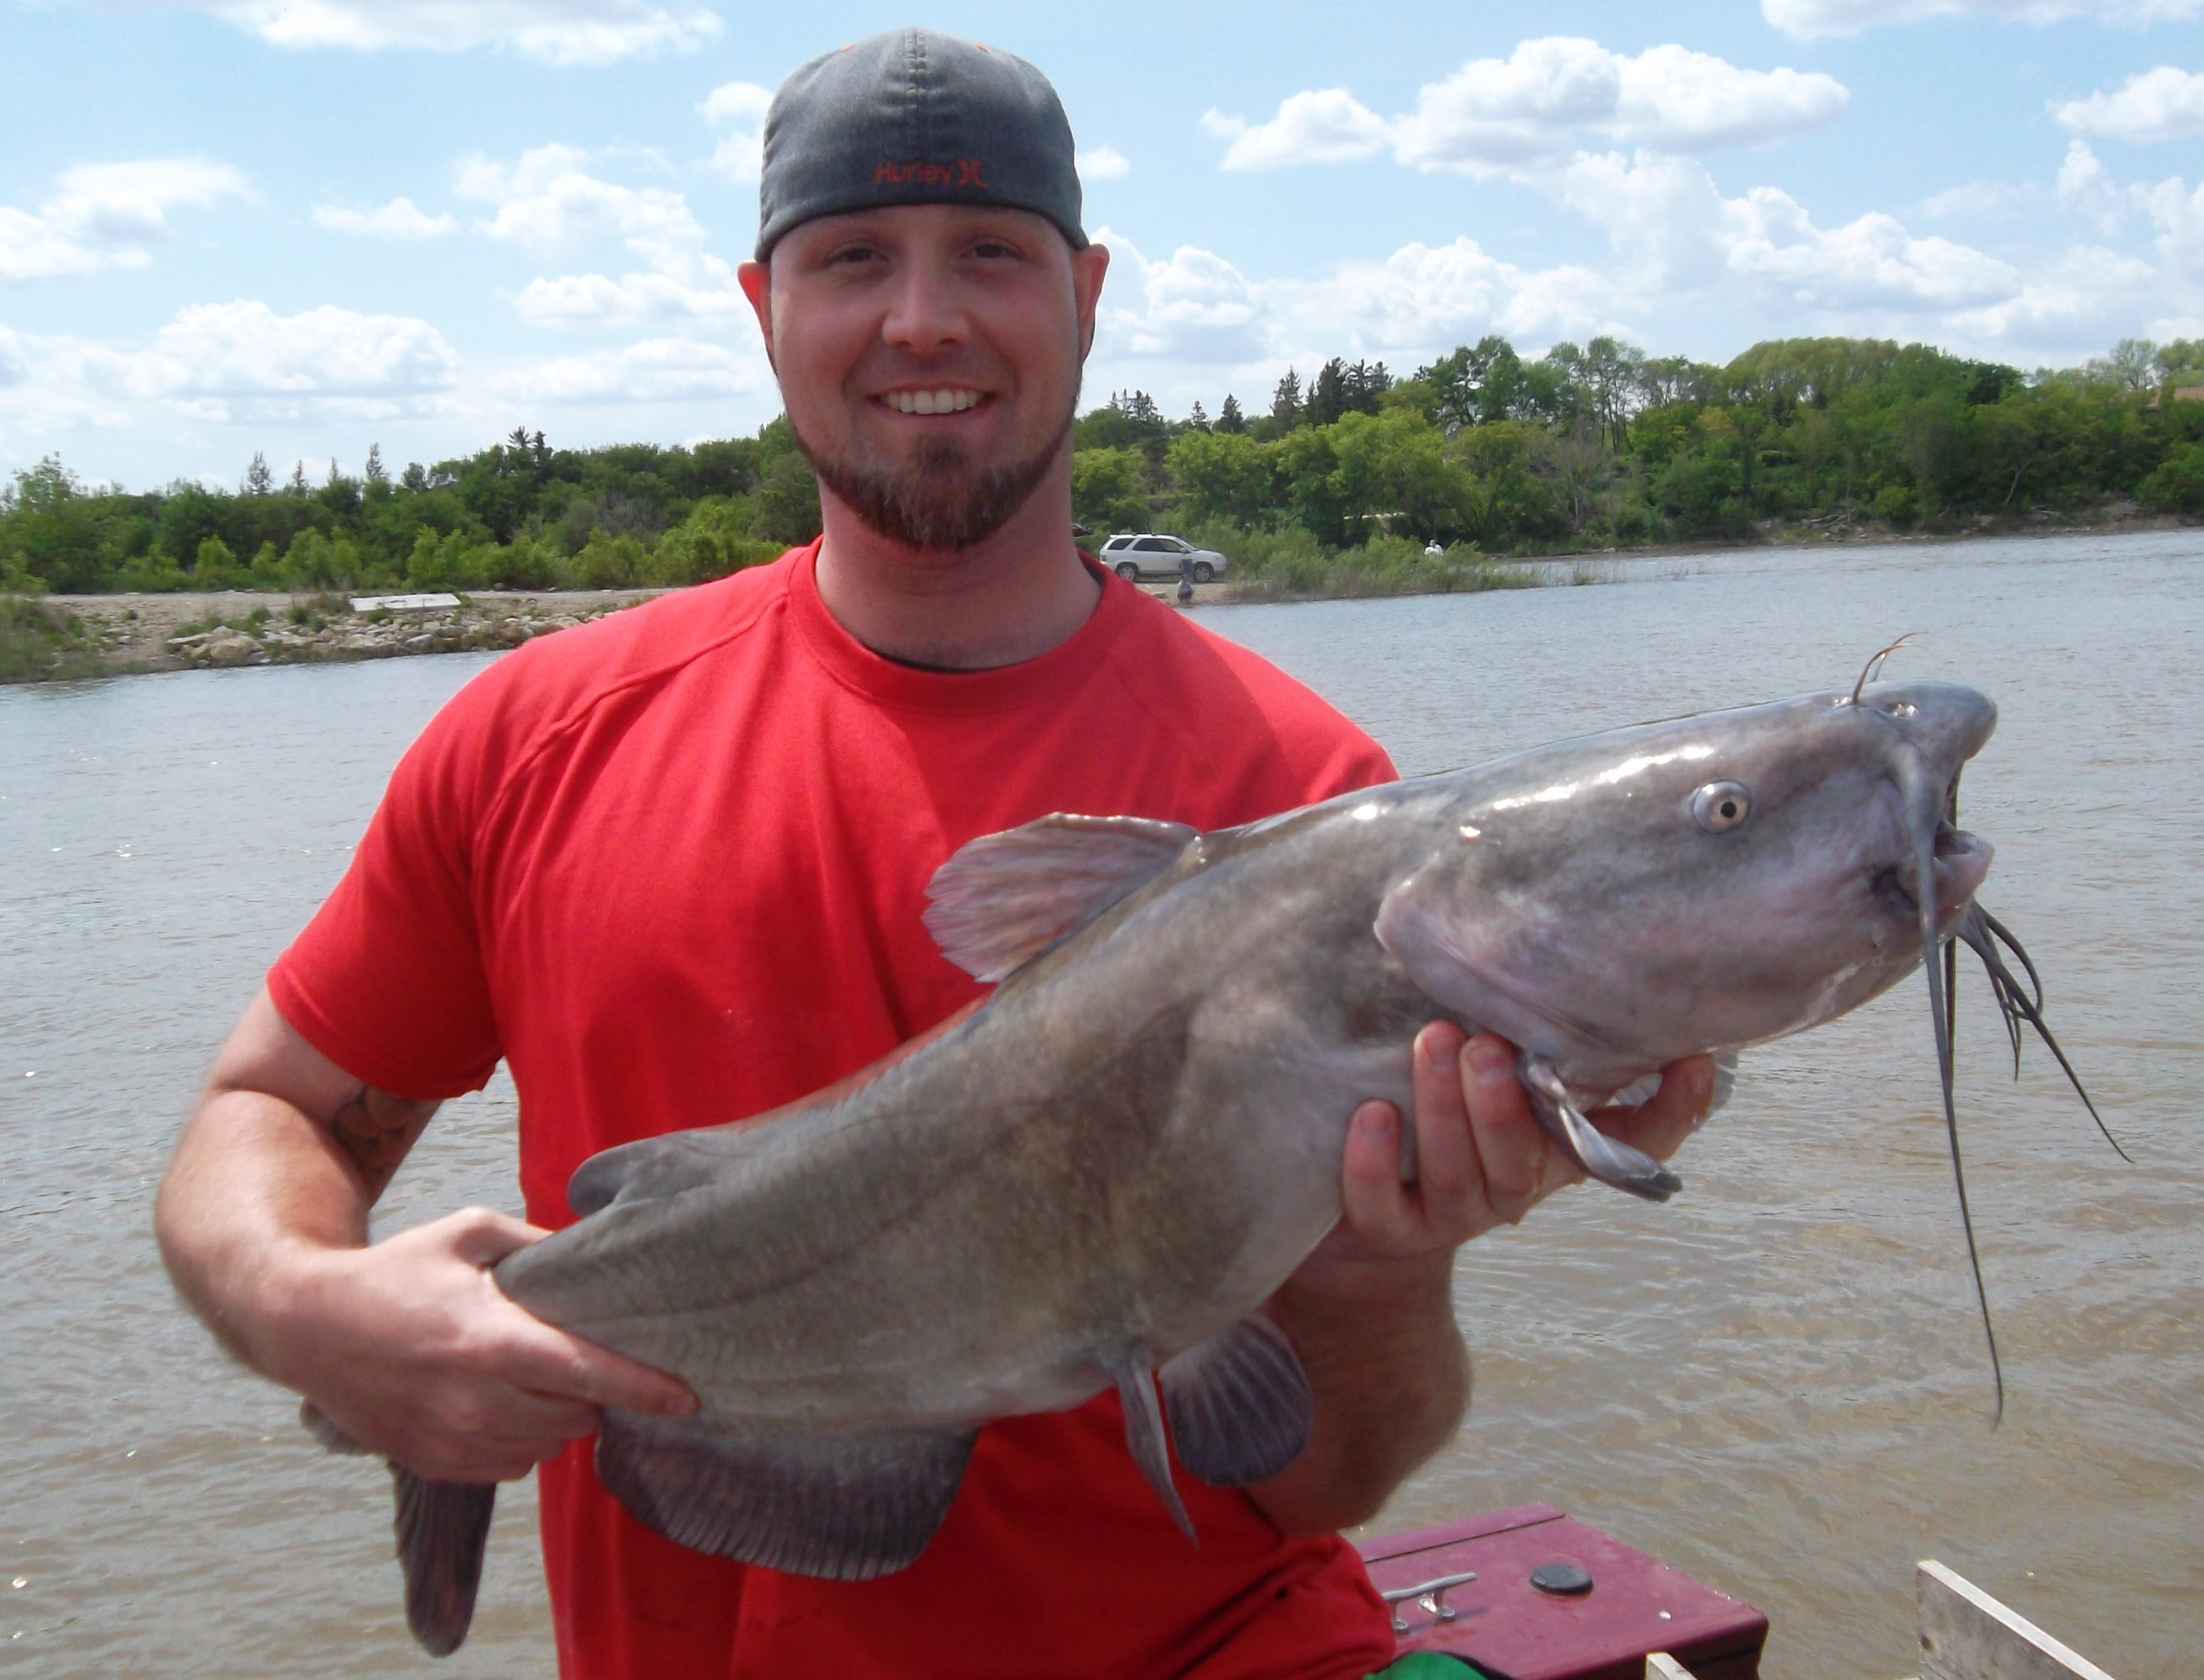 Mike Huffman II Galloway OH  Caught this long, skinny channel cat in Manitoba on a fishing trip